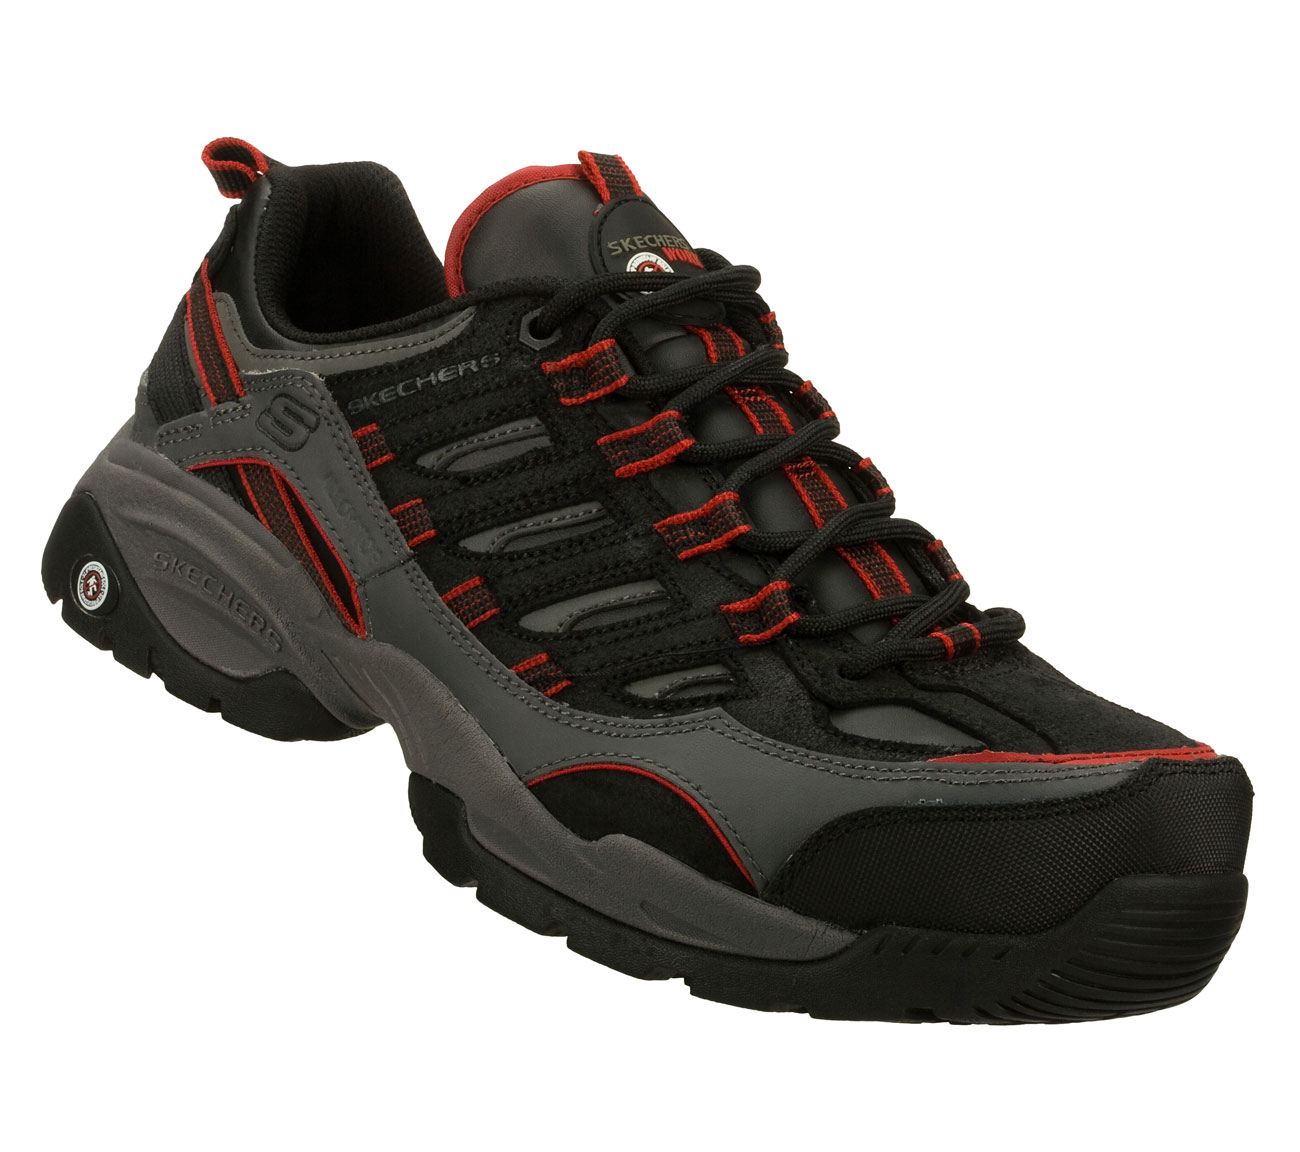 Skechers Shape Ups Safety Toe Shoes